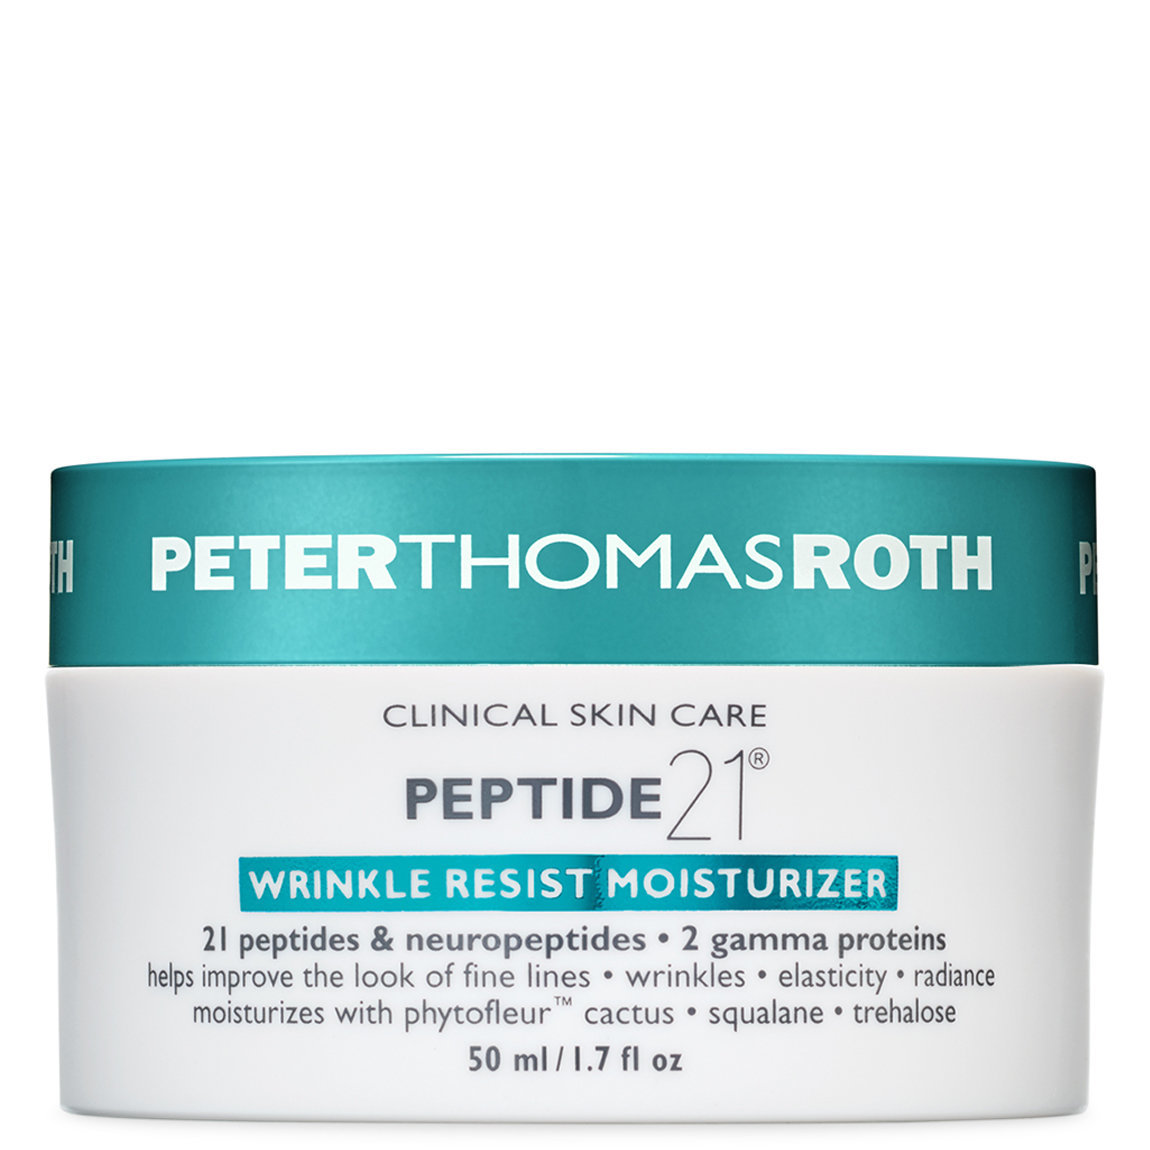 Peter Thomas Roth Peptide 21 Wrinkle Resist Moisturizer alternative view 1 - product swatch.